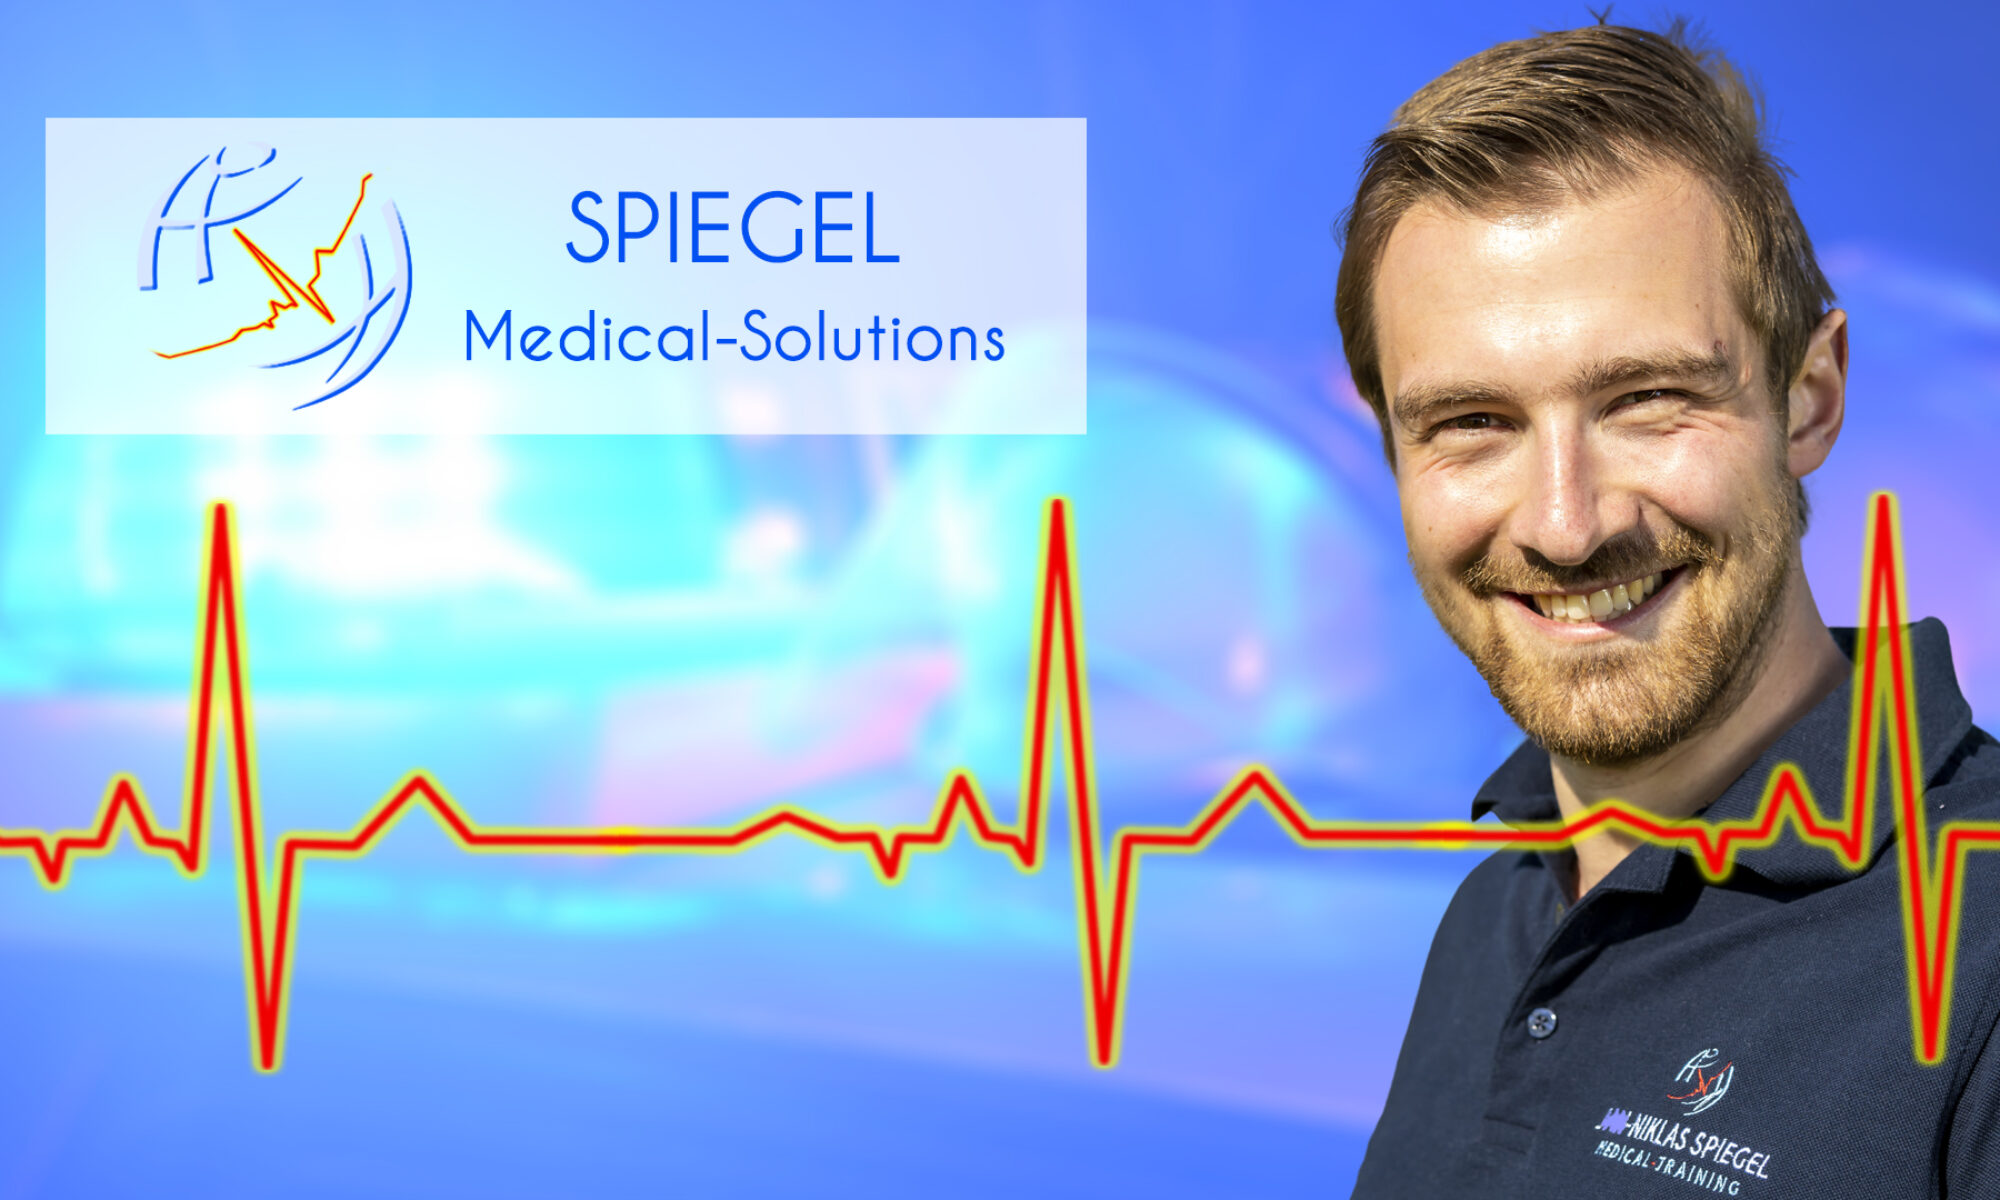 Spiegel Medical-Solutions